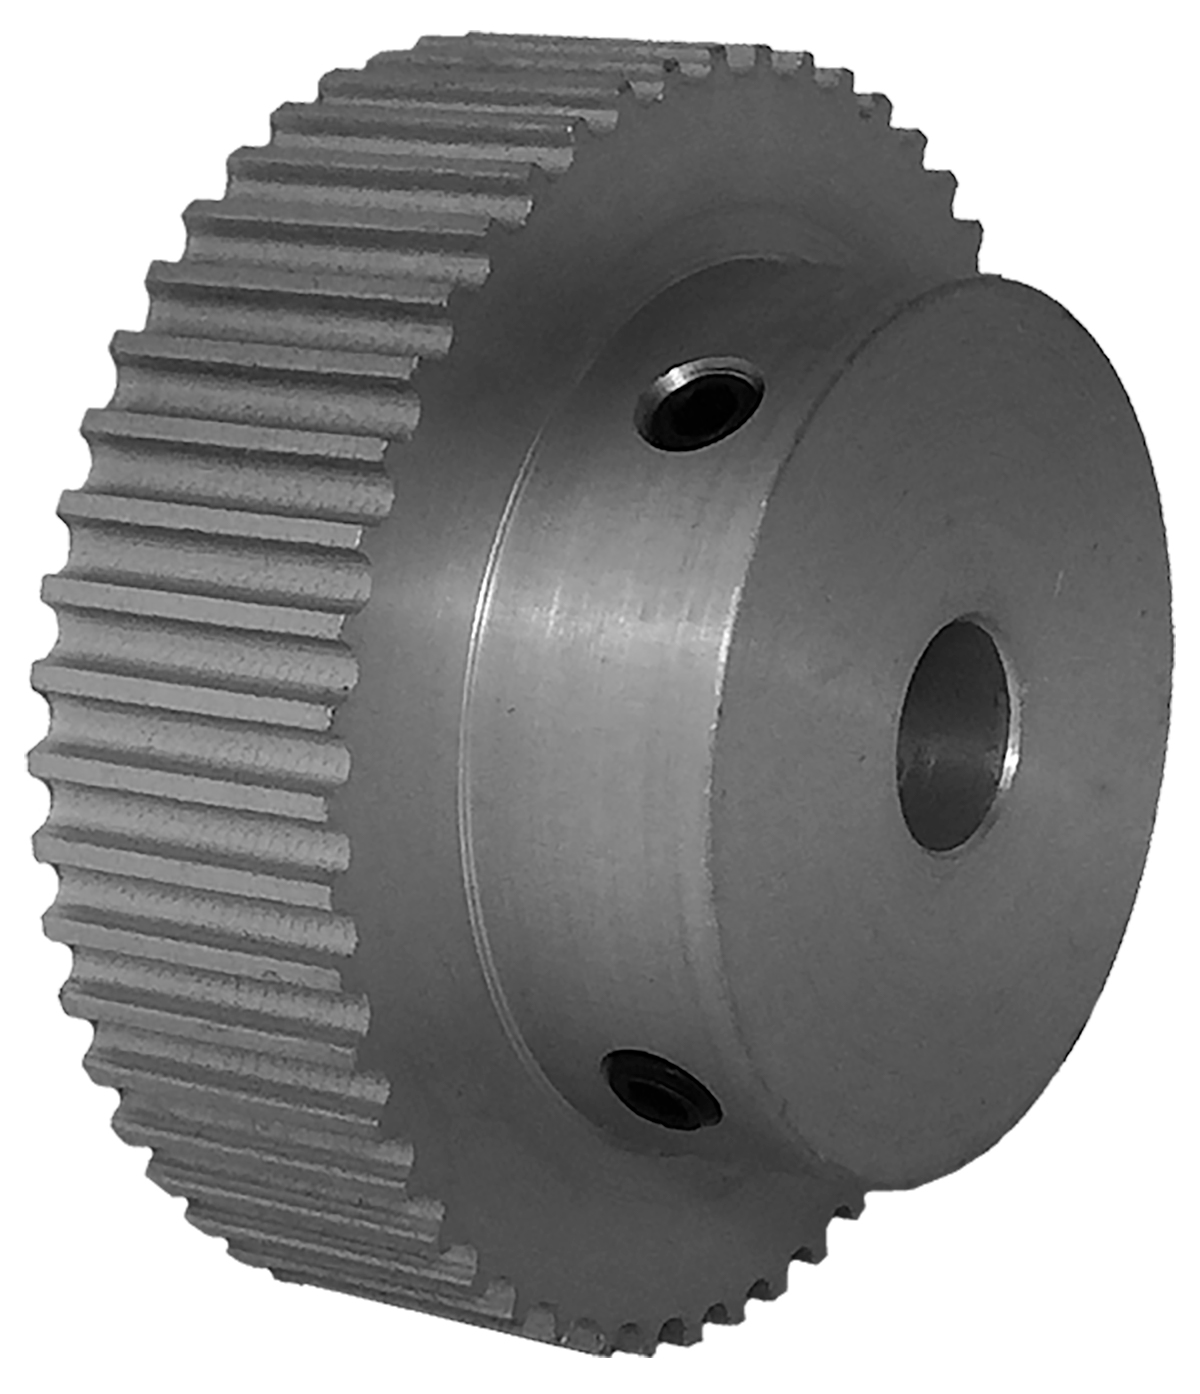 50-3M09M6A8 - Aluminum Powerhouse®HTD® Pulleys